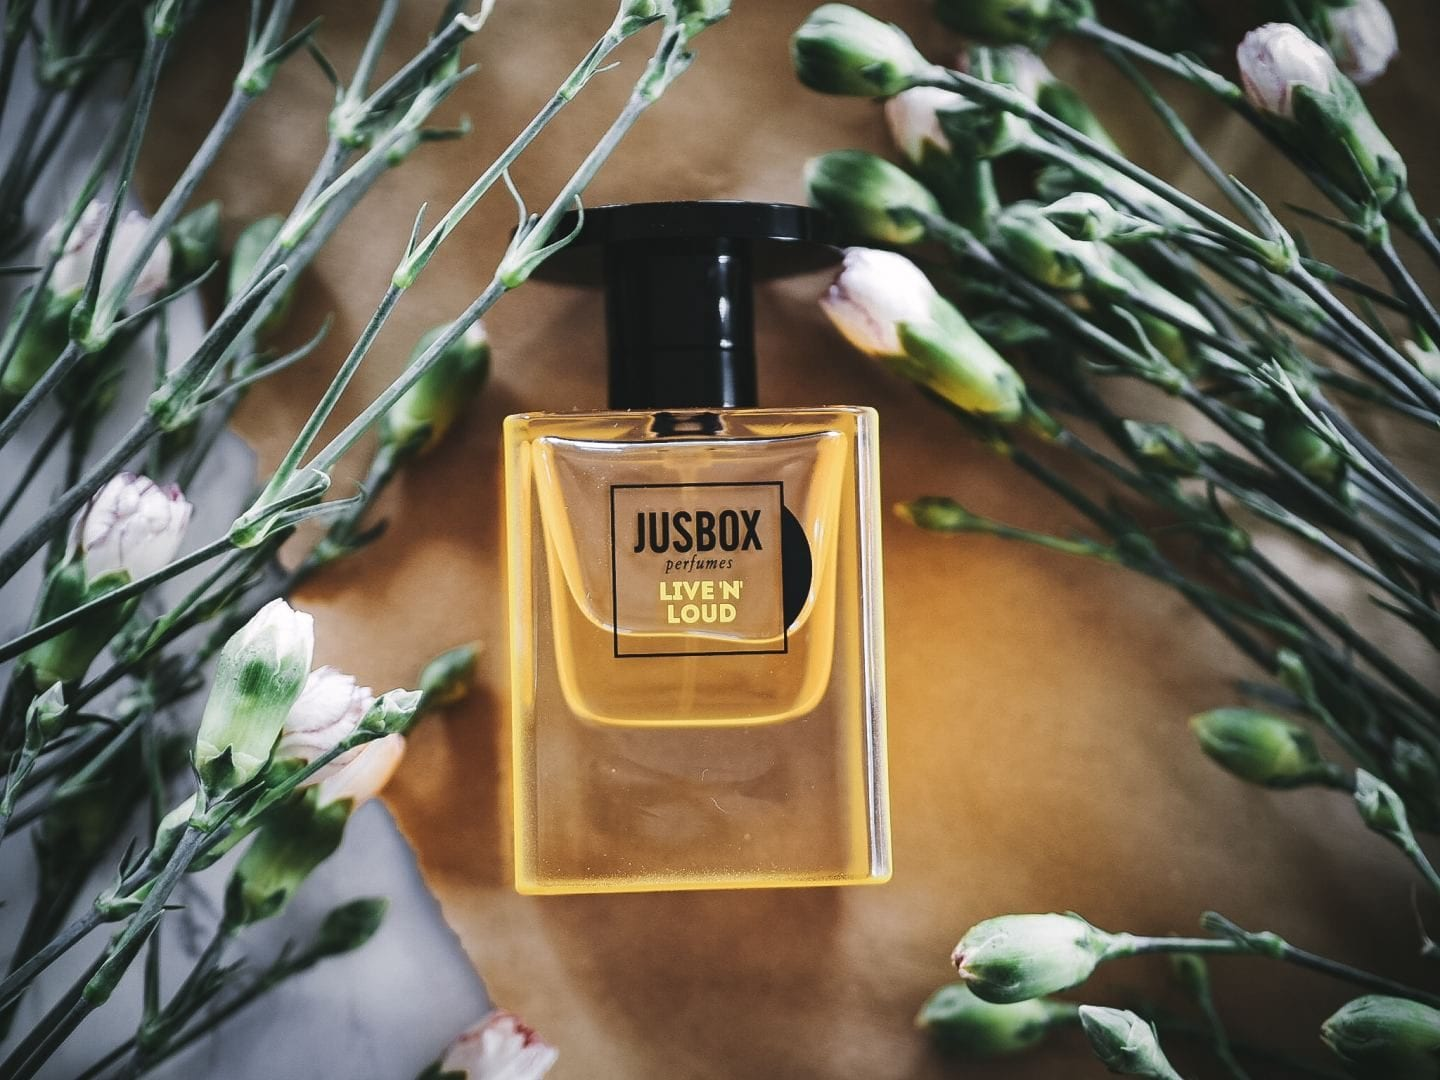 JUSBOX 'Live 'N' Loud' perfume fragrance review.